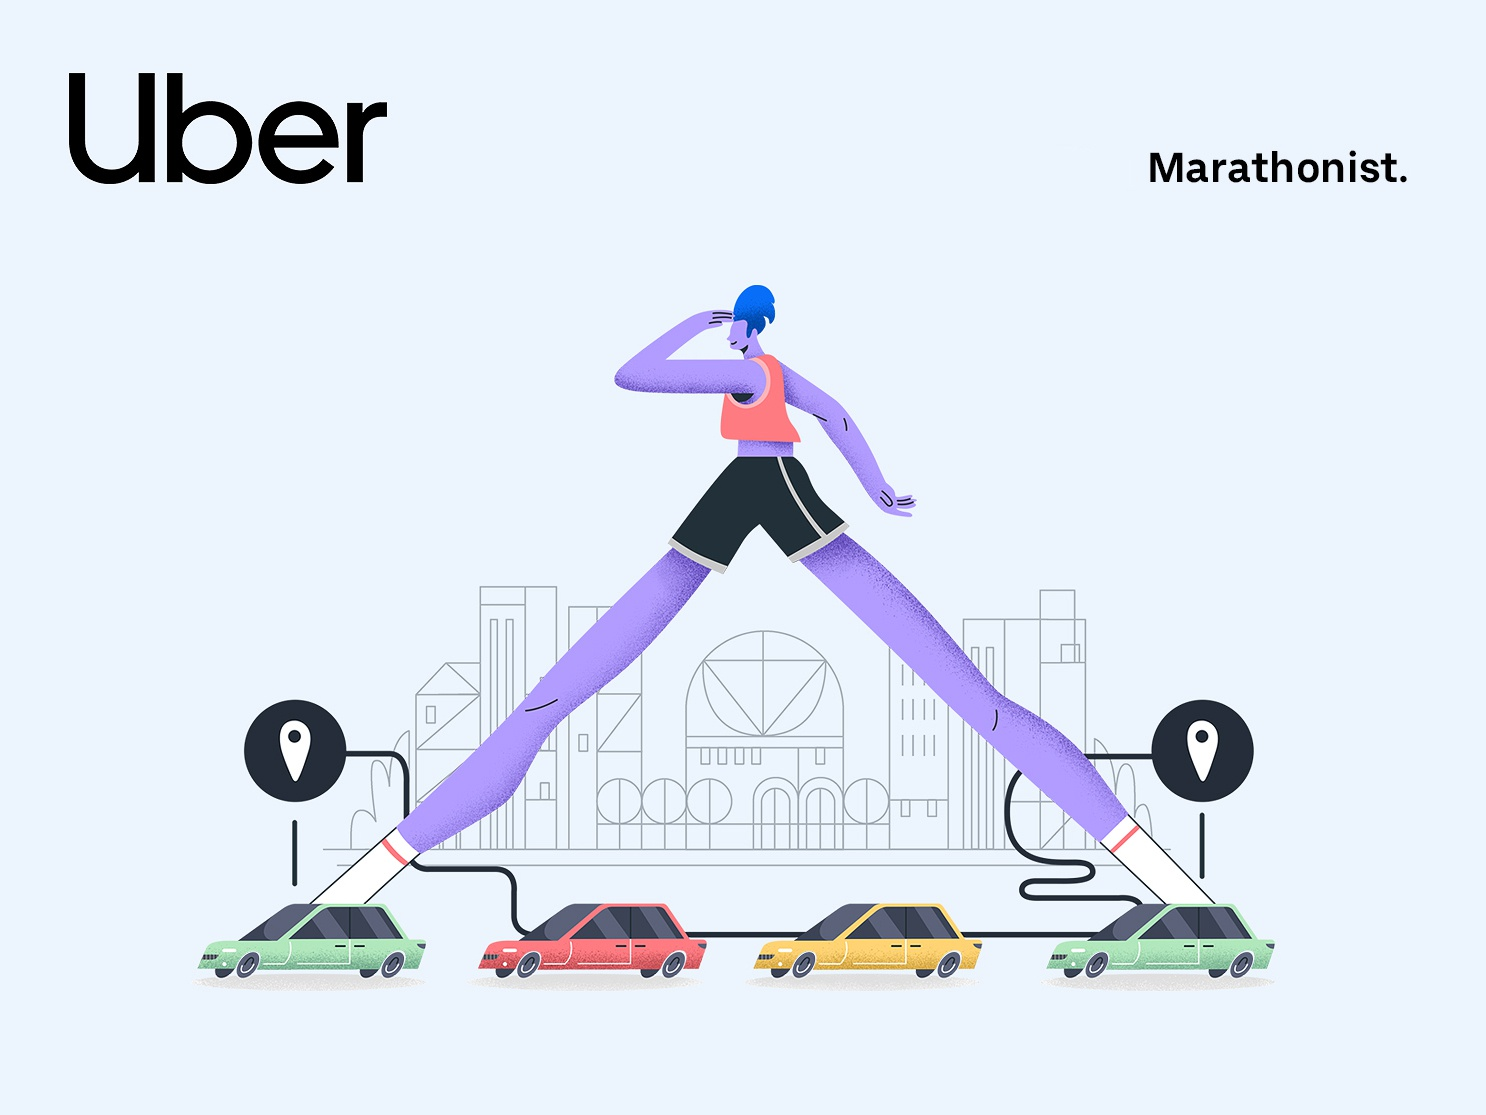 Uber – Users Review 2018 | 06 travel car uberdesign uber character running minimalism interface web illustration design ux ui